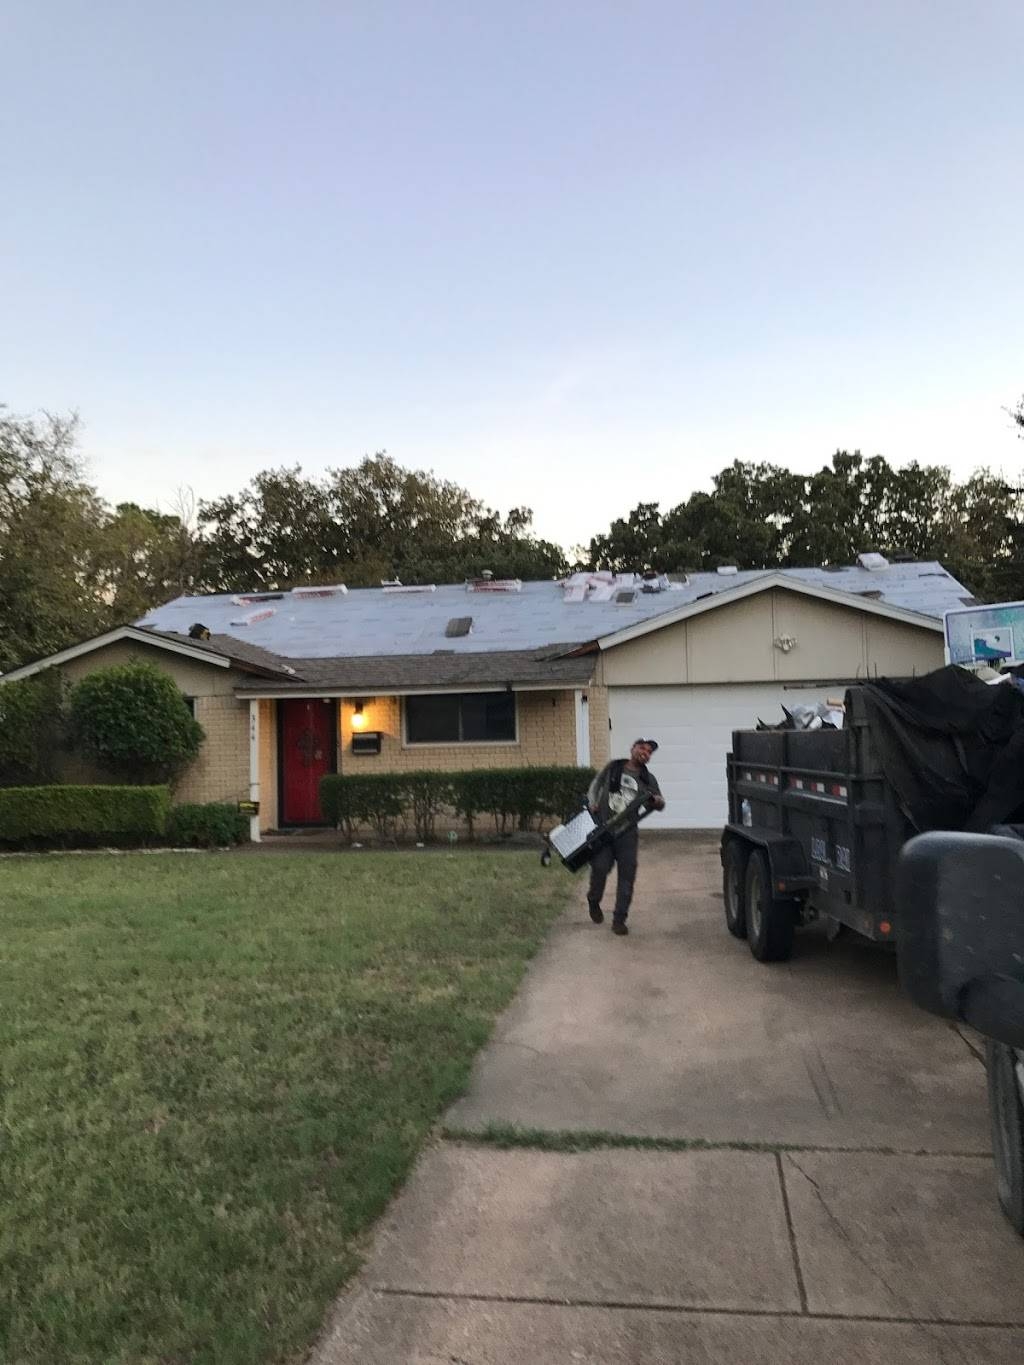 Fireman Roofing - roofing contractor  | Photo 9 of 9 | Address: 6707 Landover Hills Ln, Arlington, TX 76017, USA | Phone: (817) 455-5618